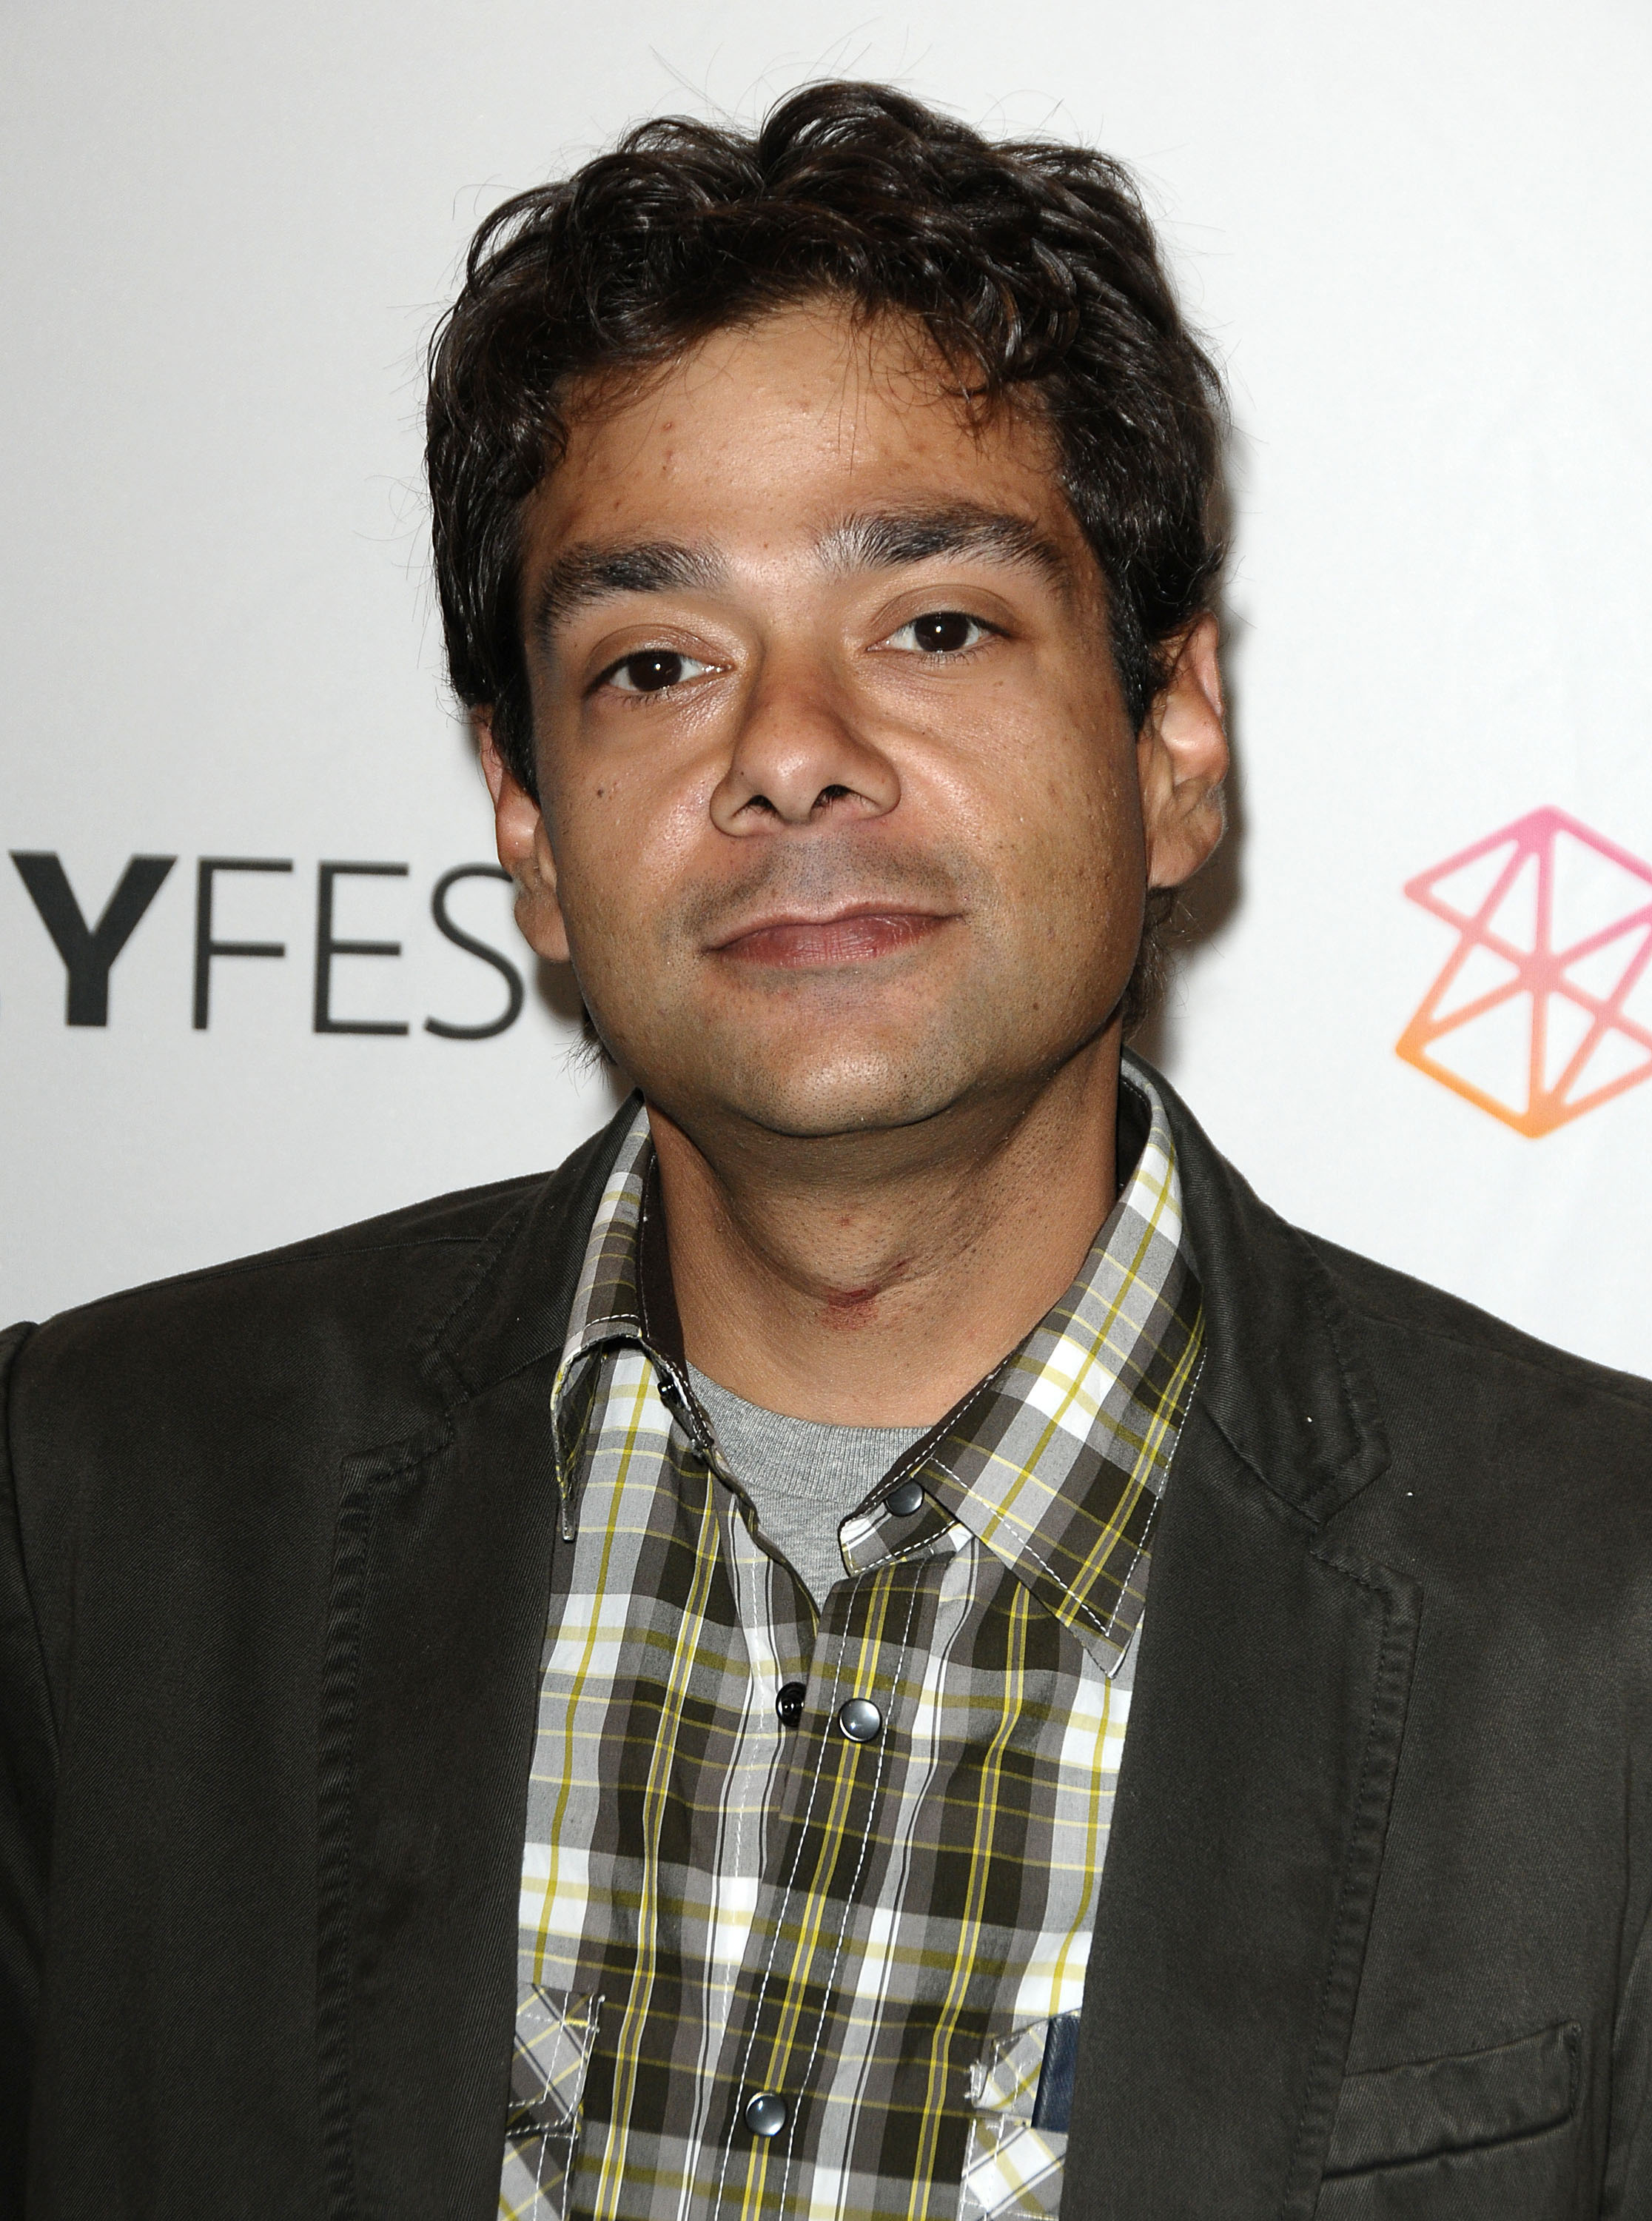 """Shaun Weiss attends the """"Freaks & Geeks/Undeclared"""" event at PaleyFest 2011 at Saban Theatre on March 12, 2011. 